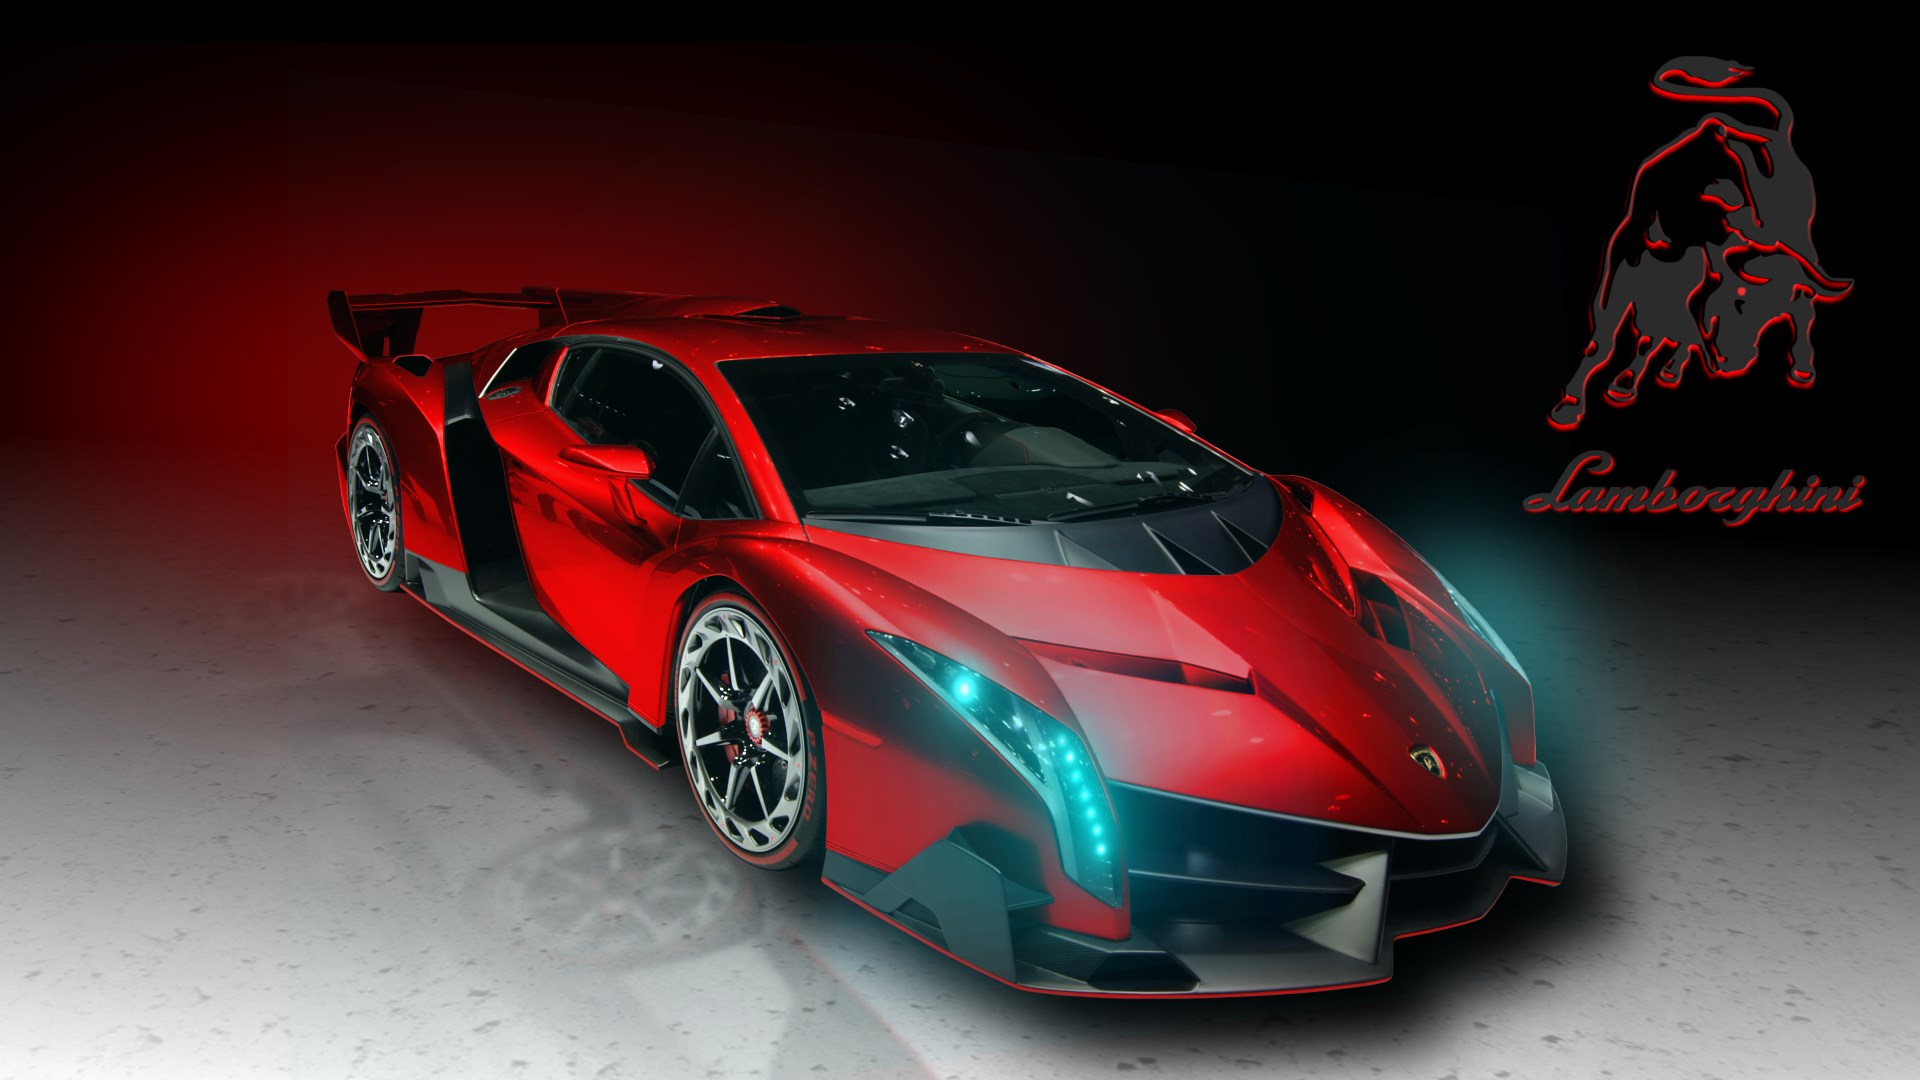 2 Door Charger >> lamborghini veneno wallpaper - downloadwallpaper.org